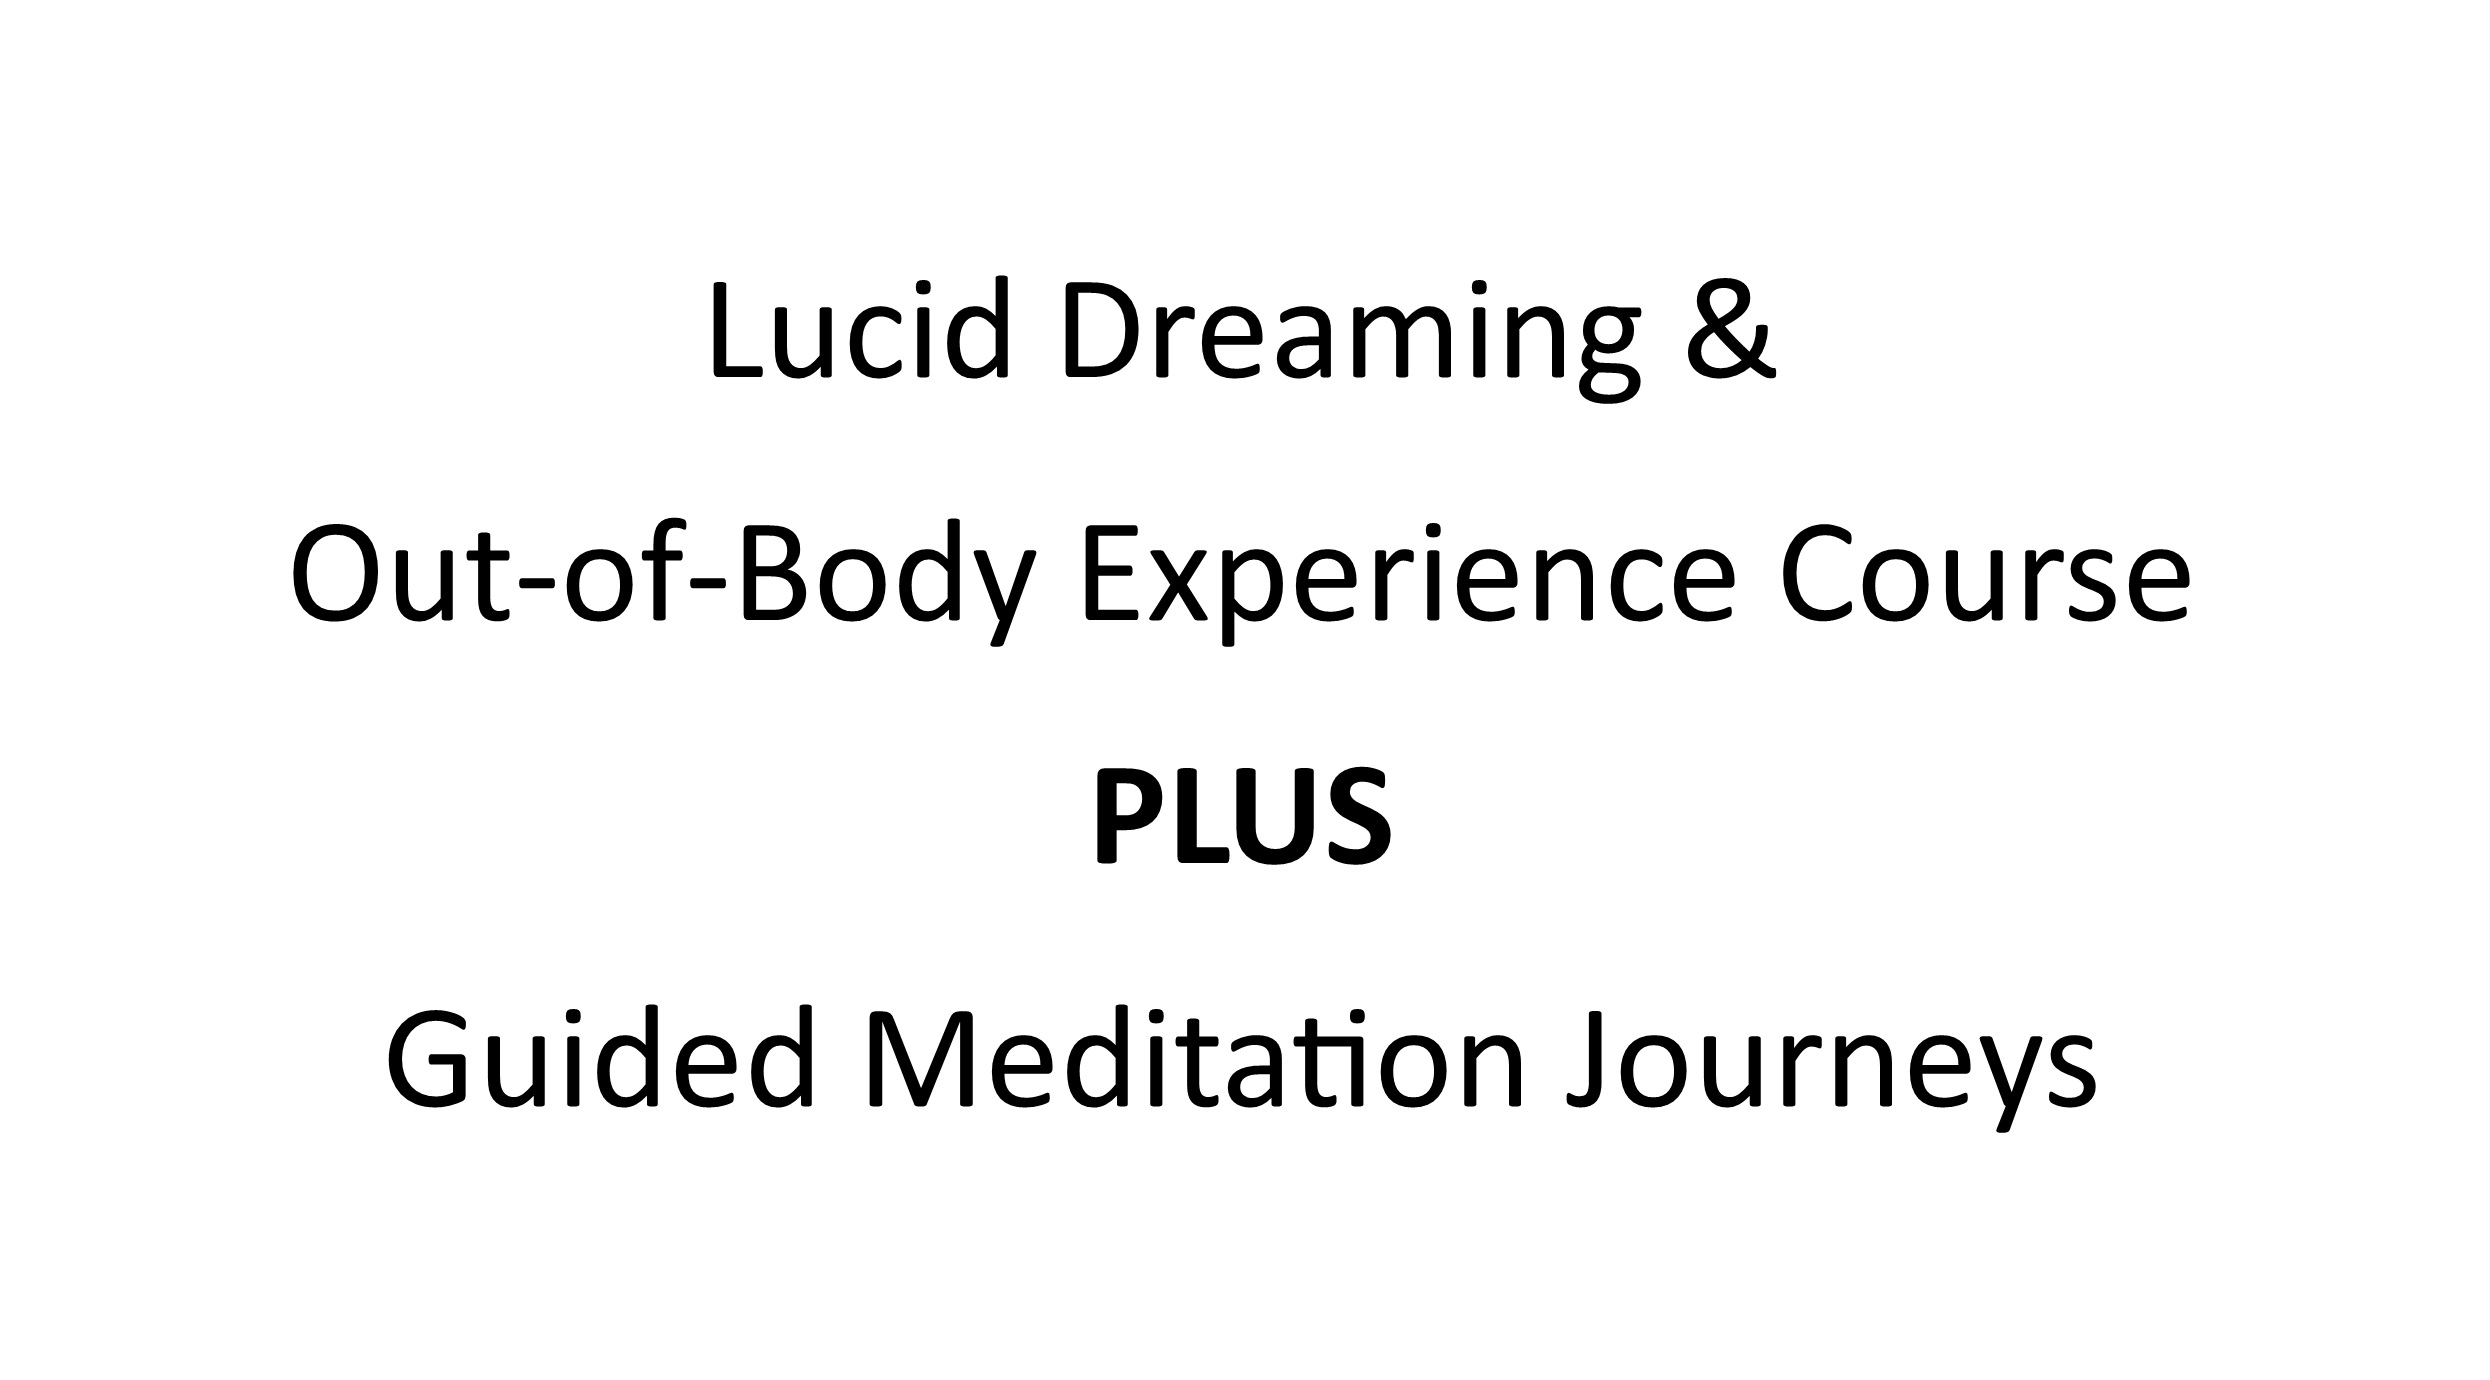 Lucid Dreaming & Out-of-Body Experience Training PLUS Guided Meditation Journeys